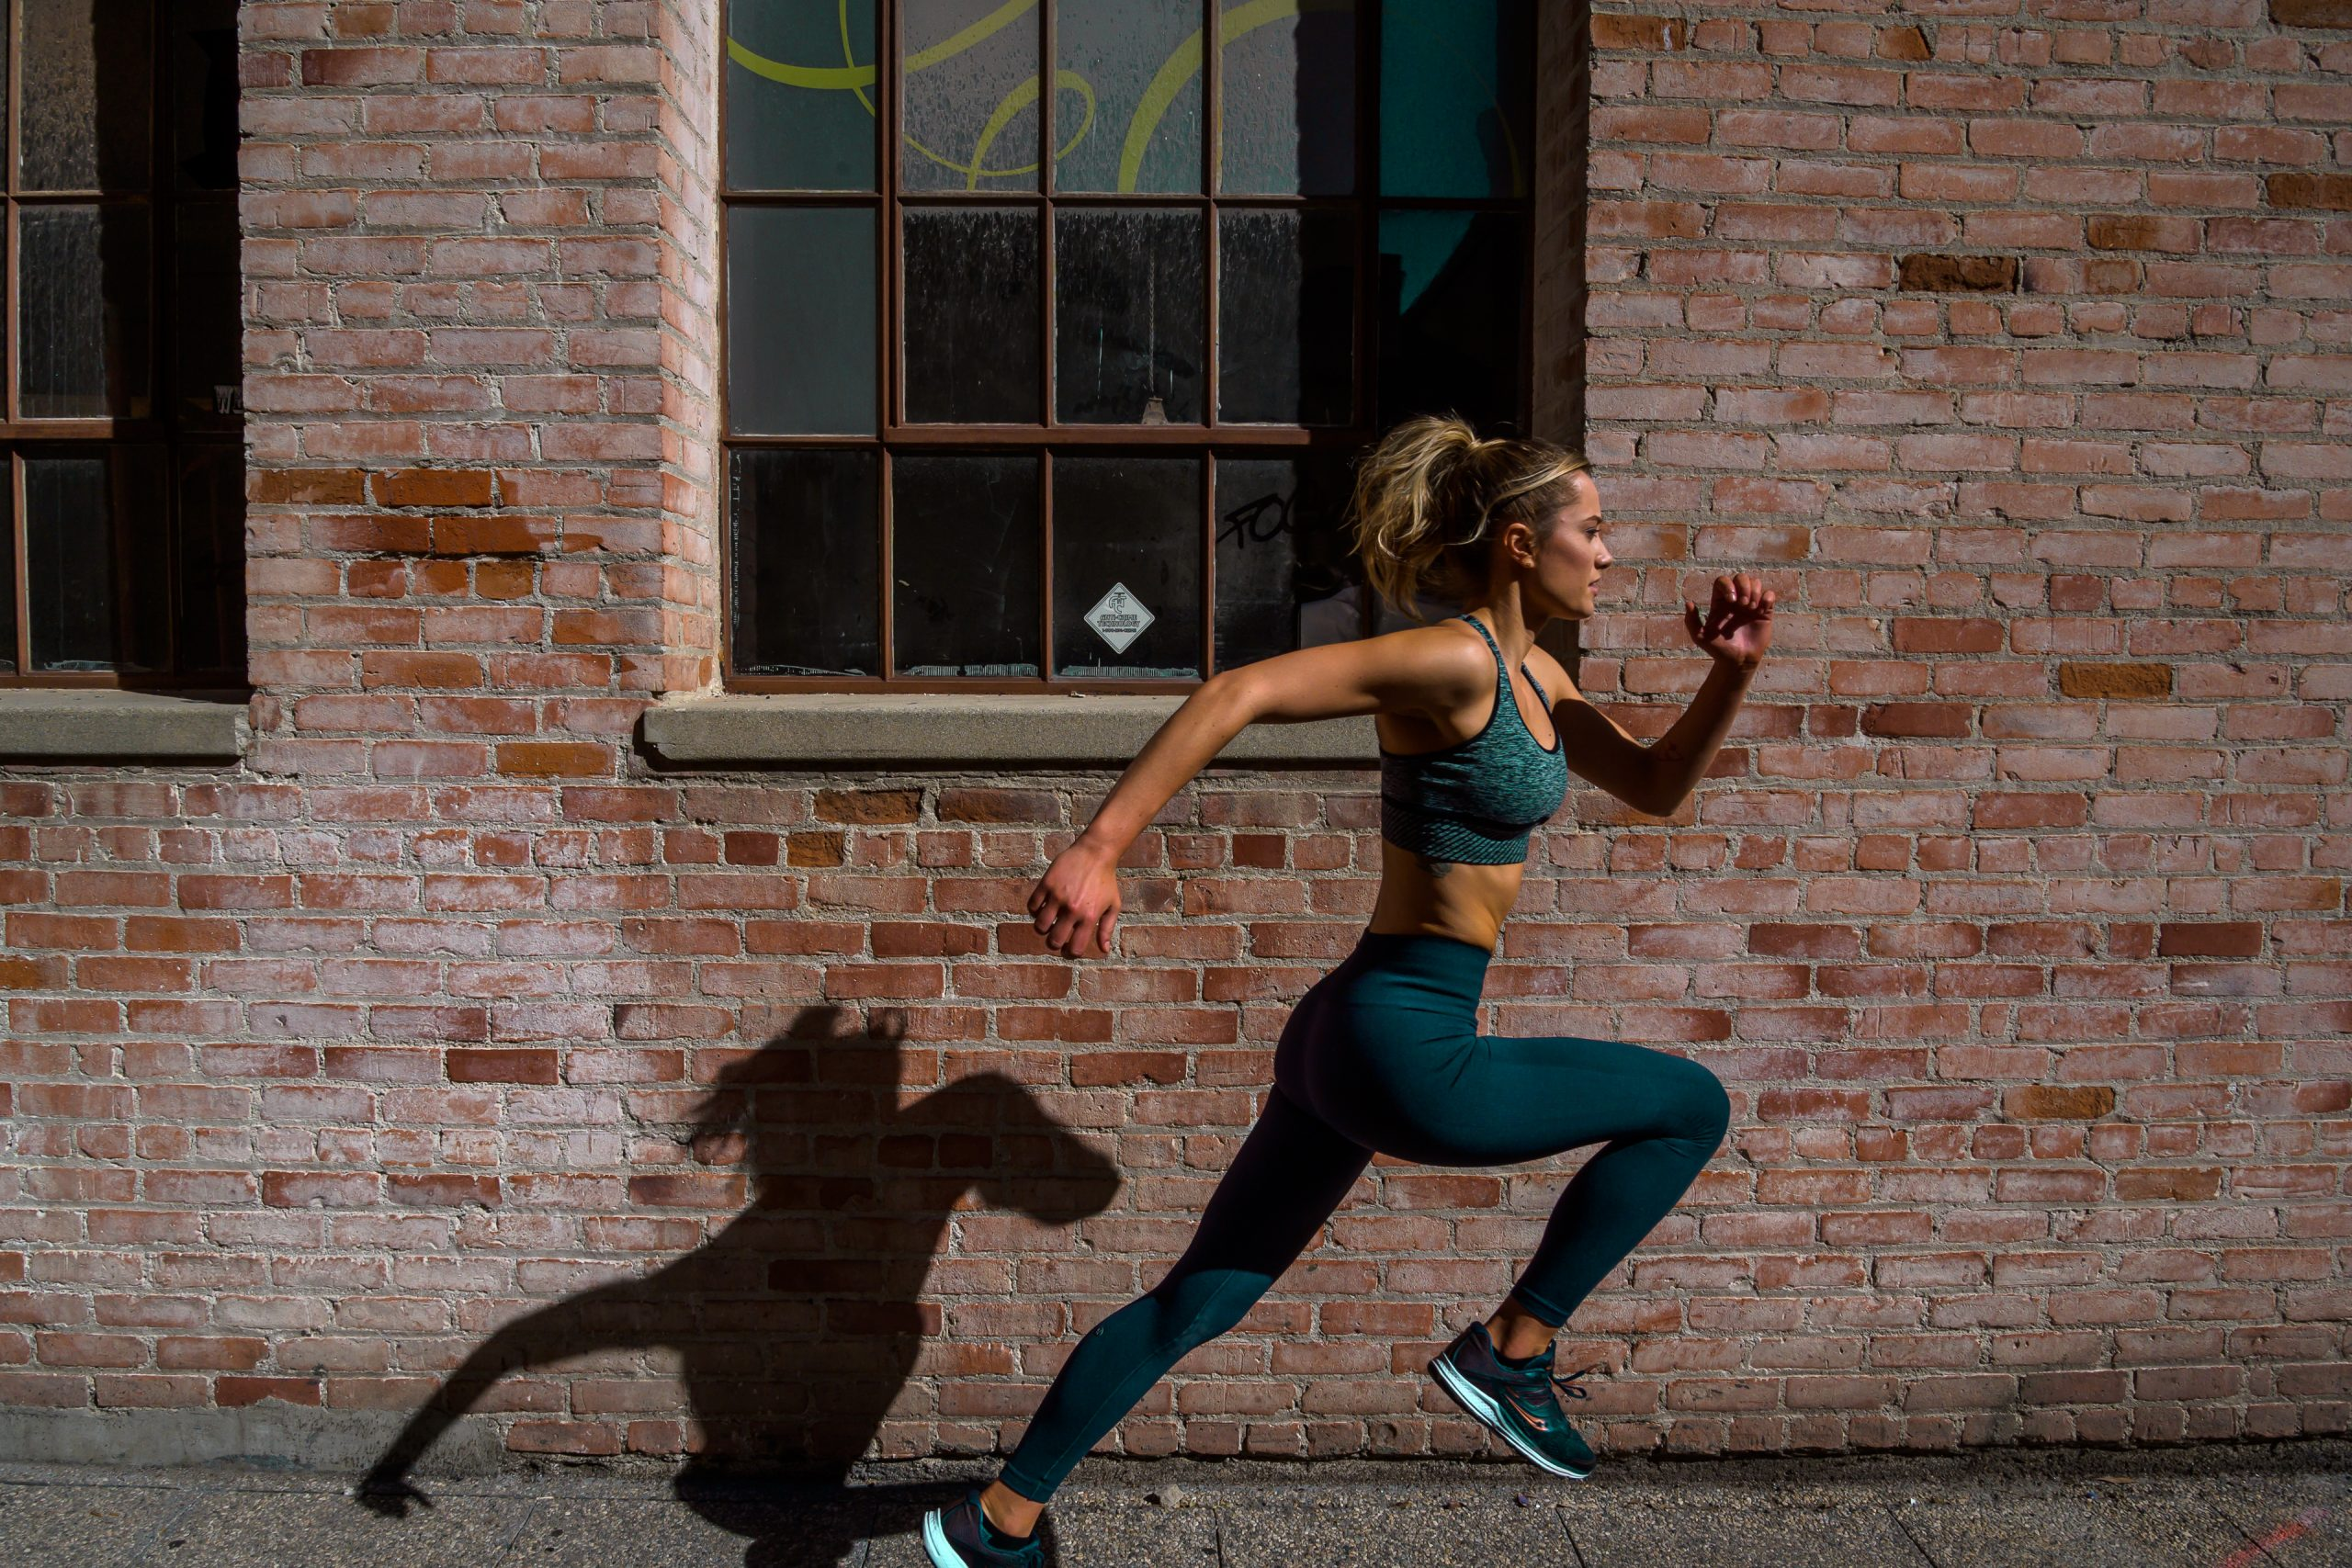 Carly Lane running for a sports commercial shoot show casing athleticism and casting a cool shadow on the brick wall behind her.